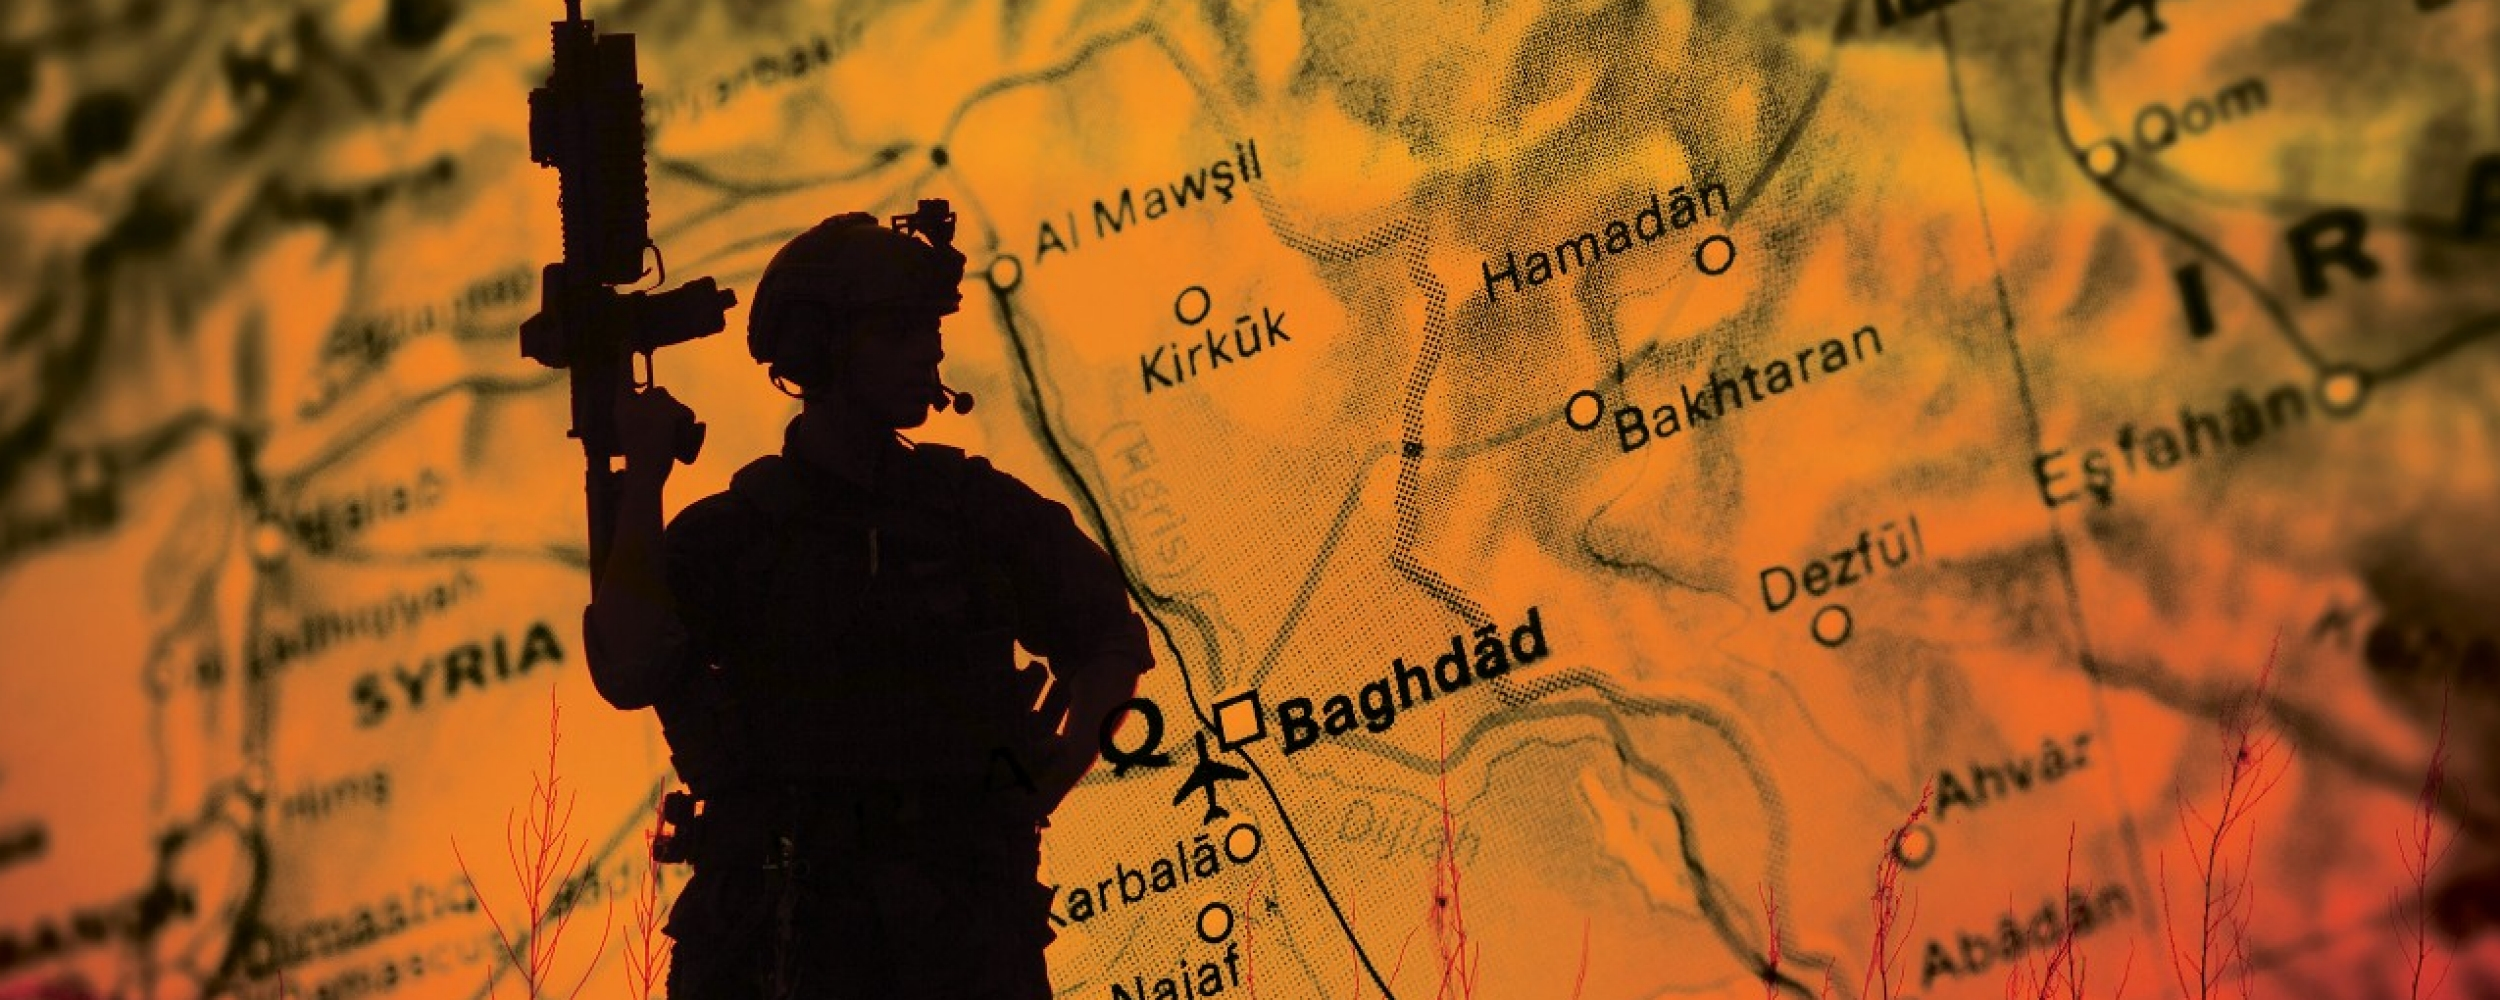 Graphic depicts a soldier in front of a map of Iraq.